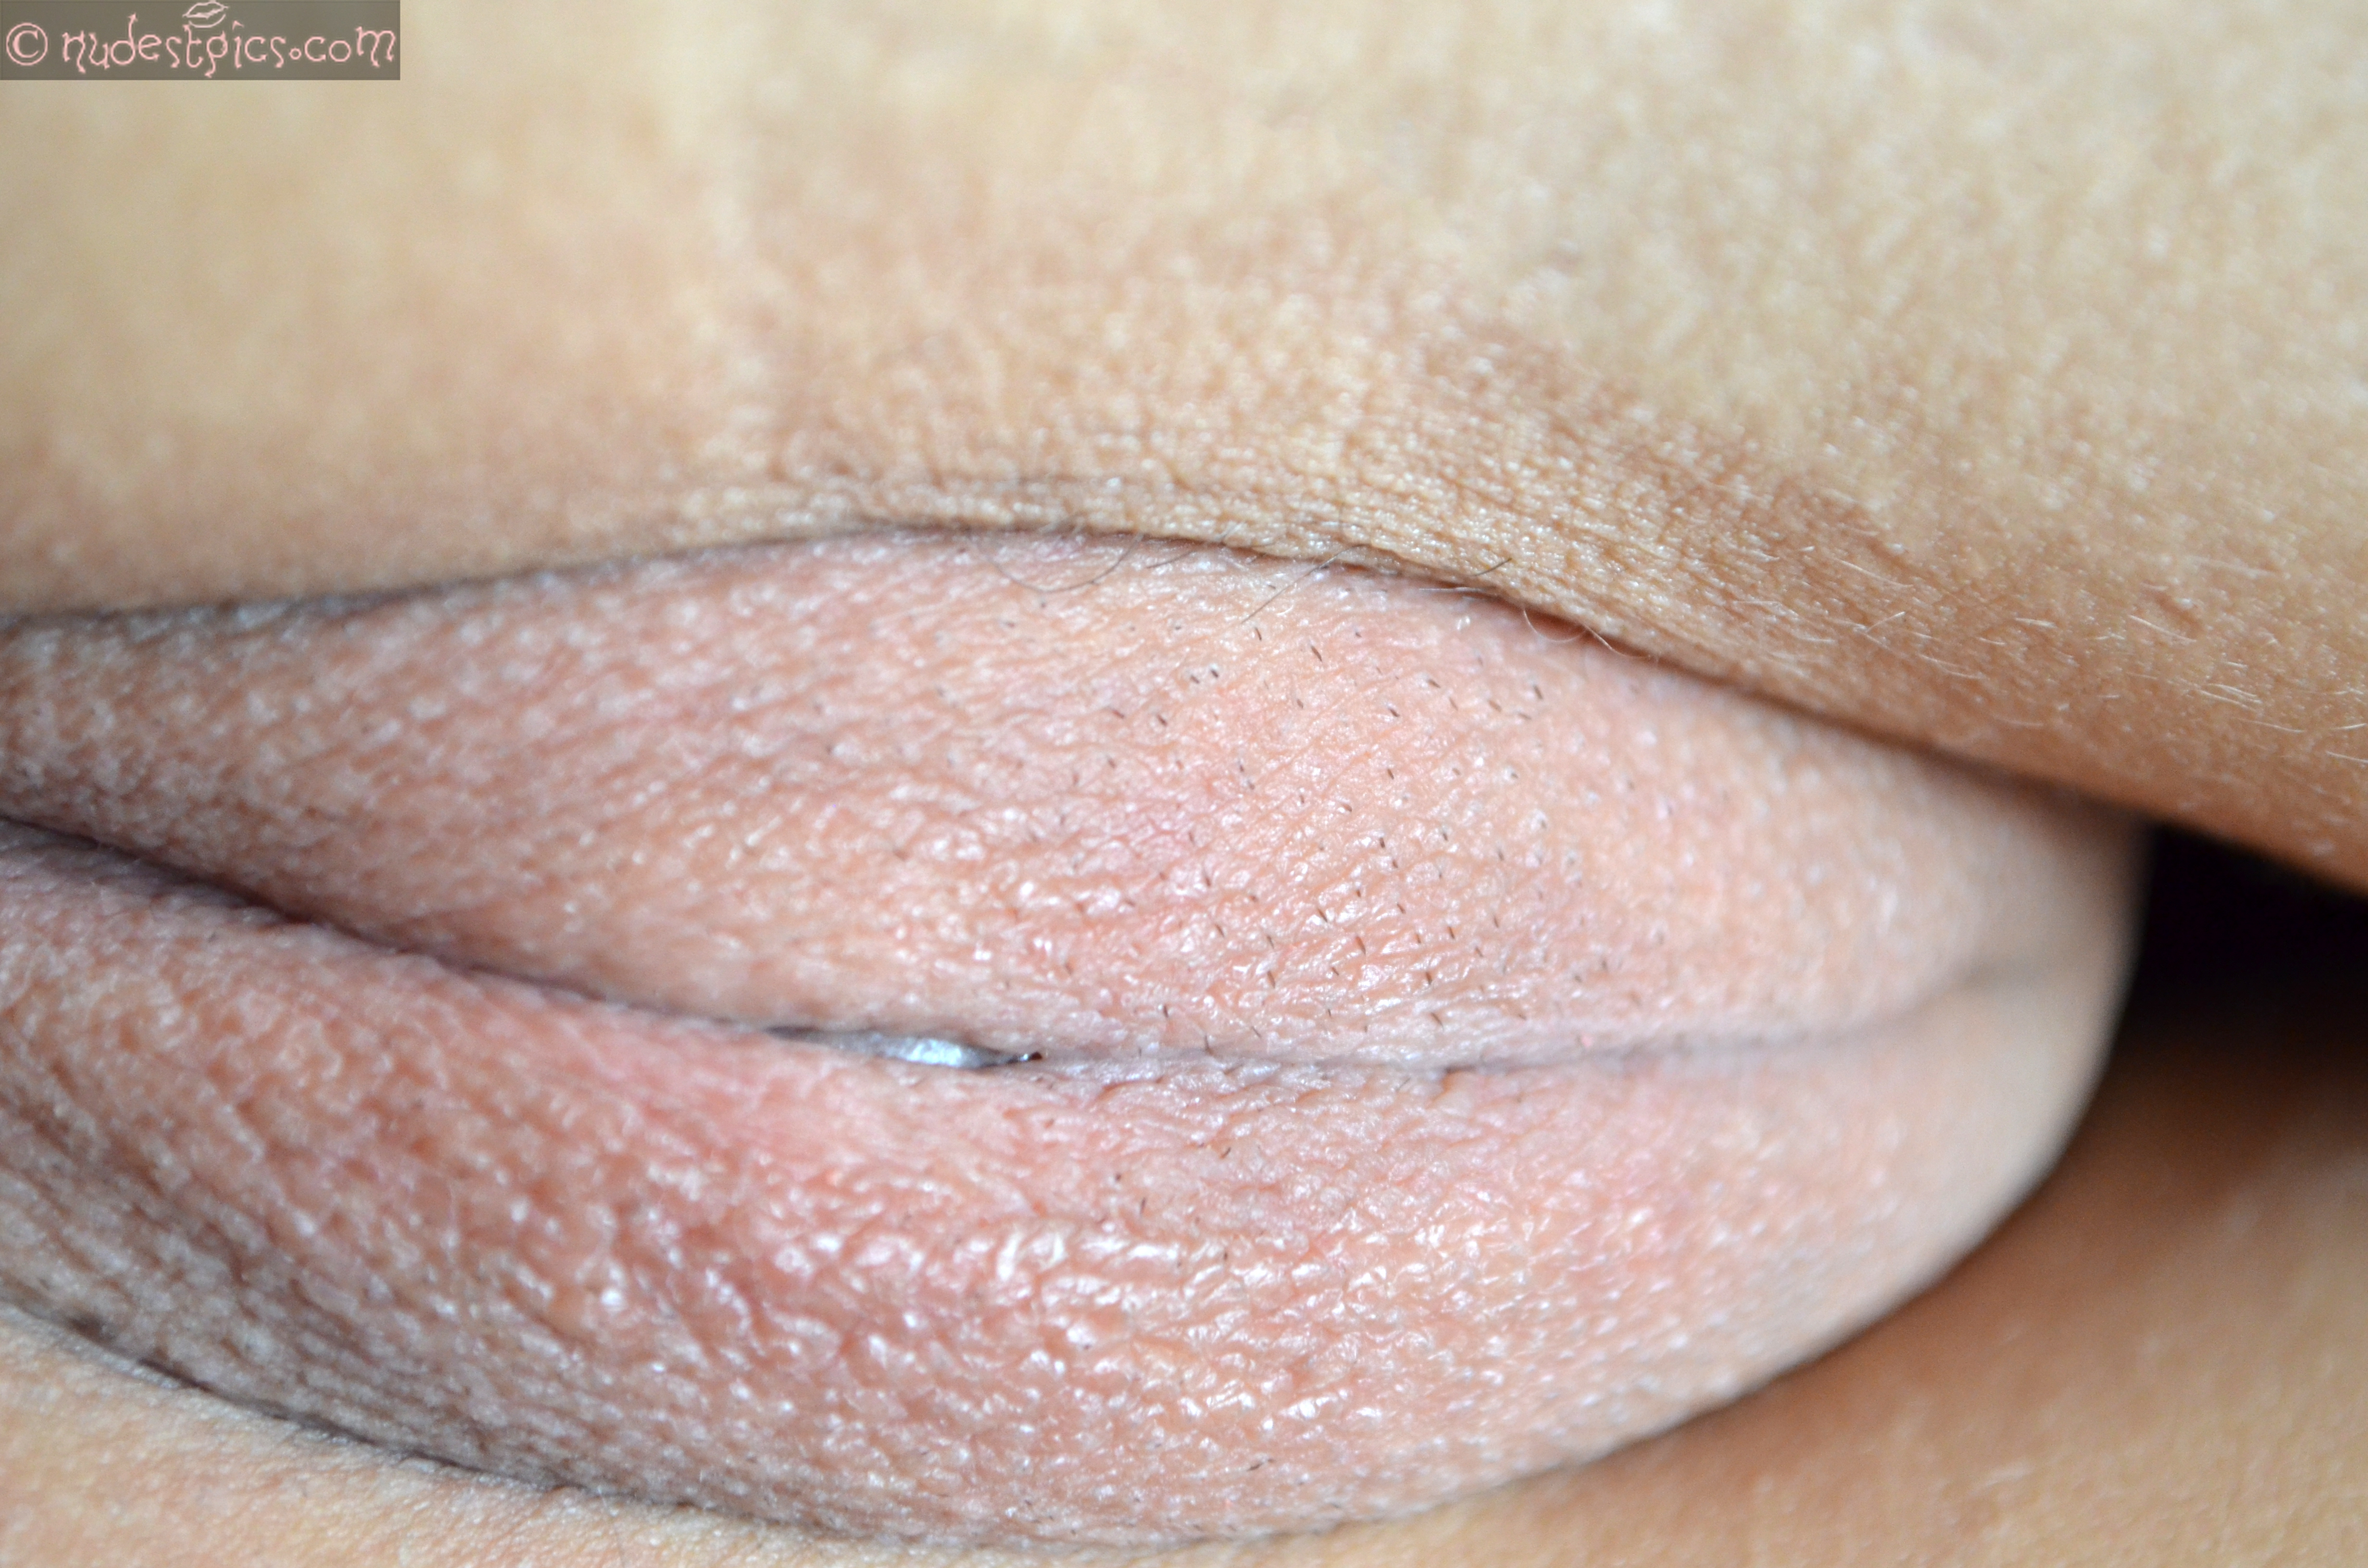 Outer Labia Close-Up